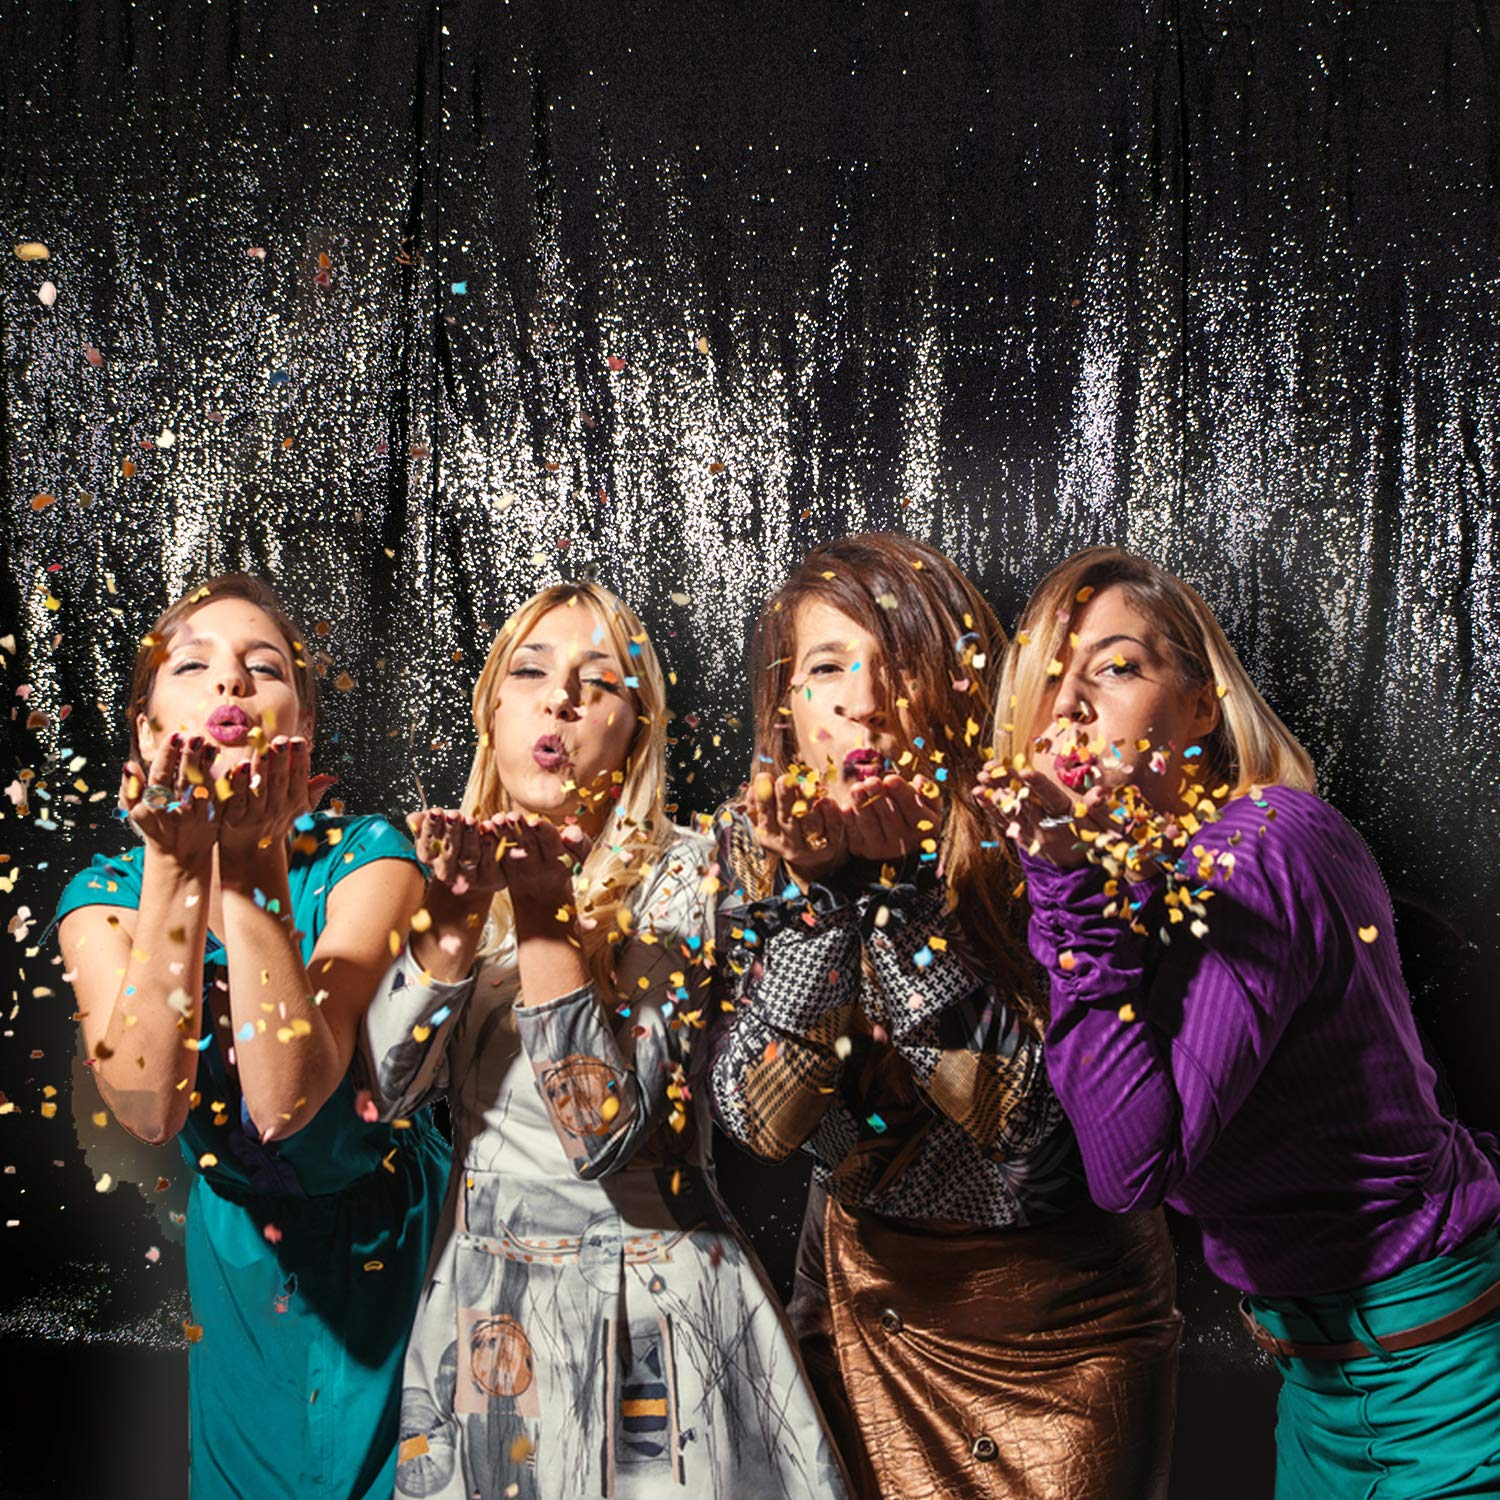 Party Delight 7Ft X 7Ft Black Non-Transparent Sparkling Satin Sequin Backdrop Curtain for Photography and Photo Booth, Birthday, Baby Bridal Shower, Party's Background Decoration. (7Ft x 7Ft, Black)